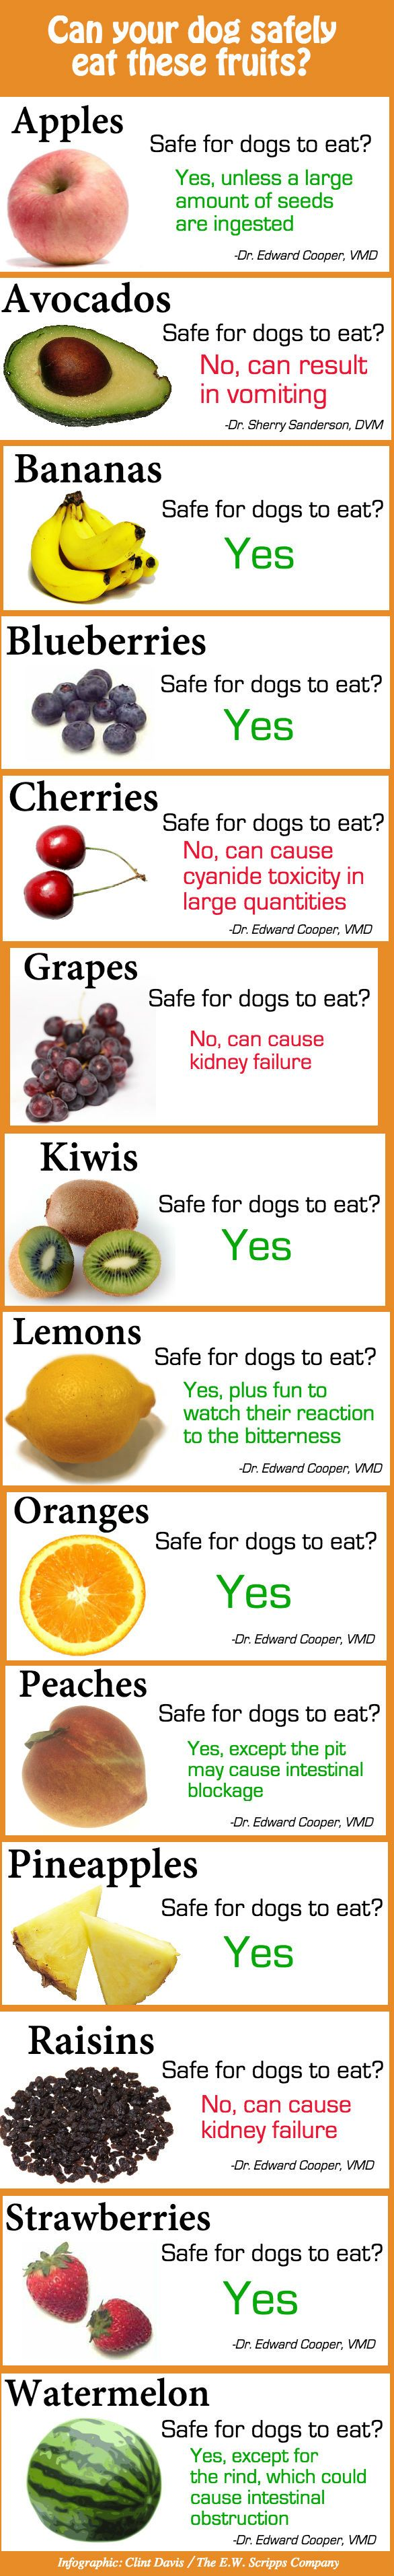 Handy infographic of what fruits you can and can't share with your dog.